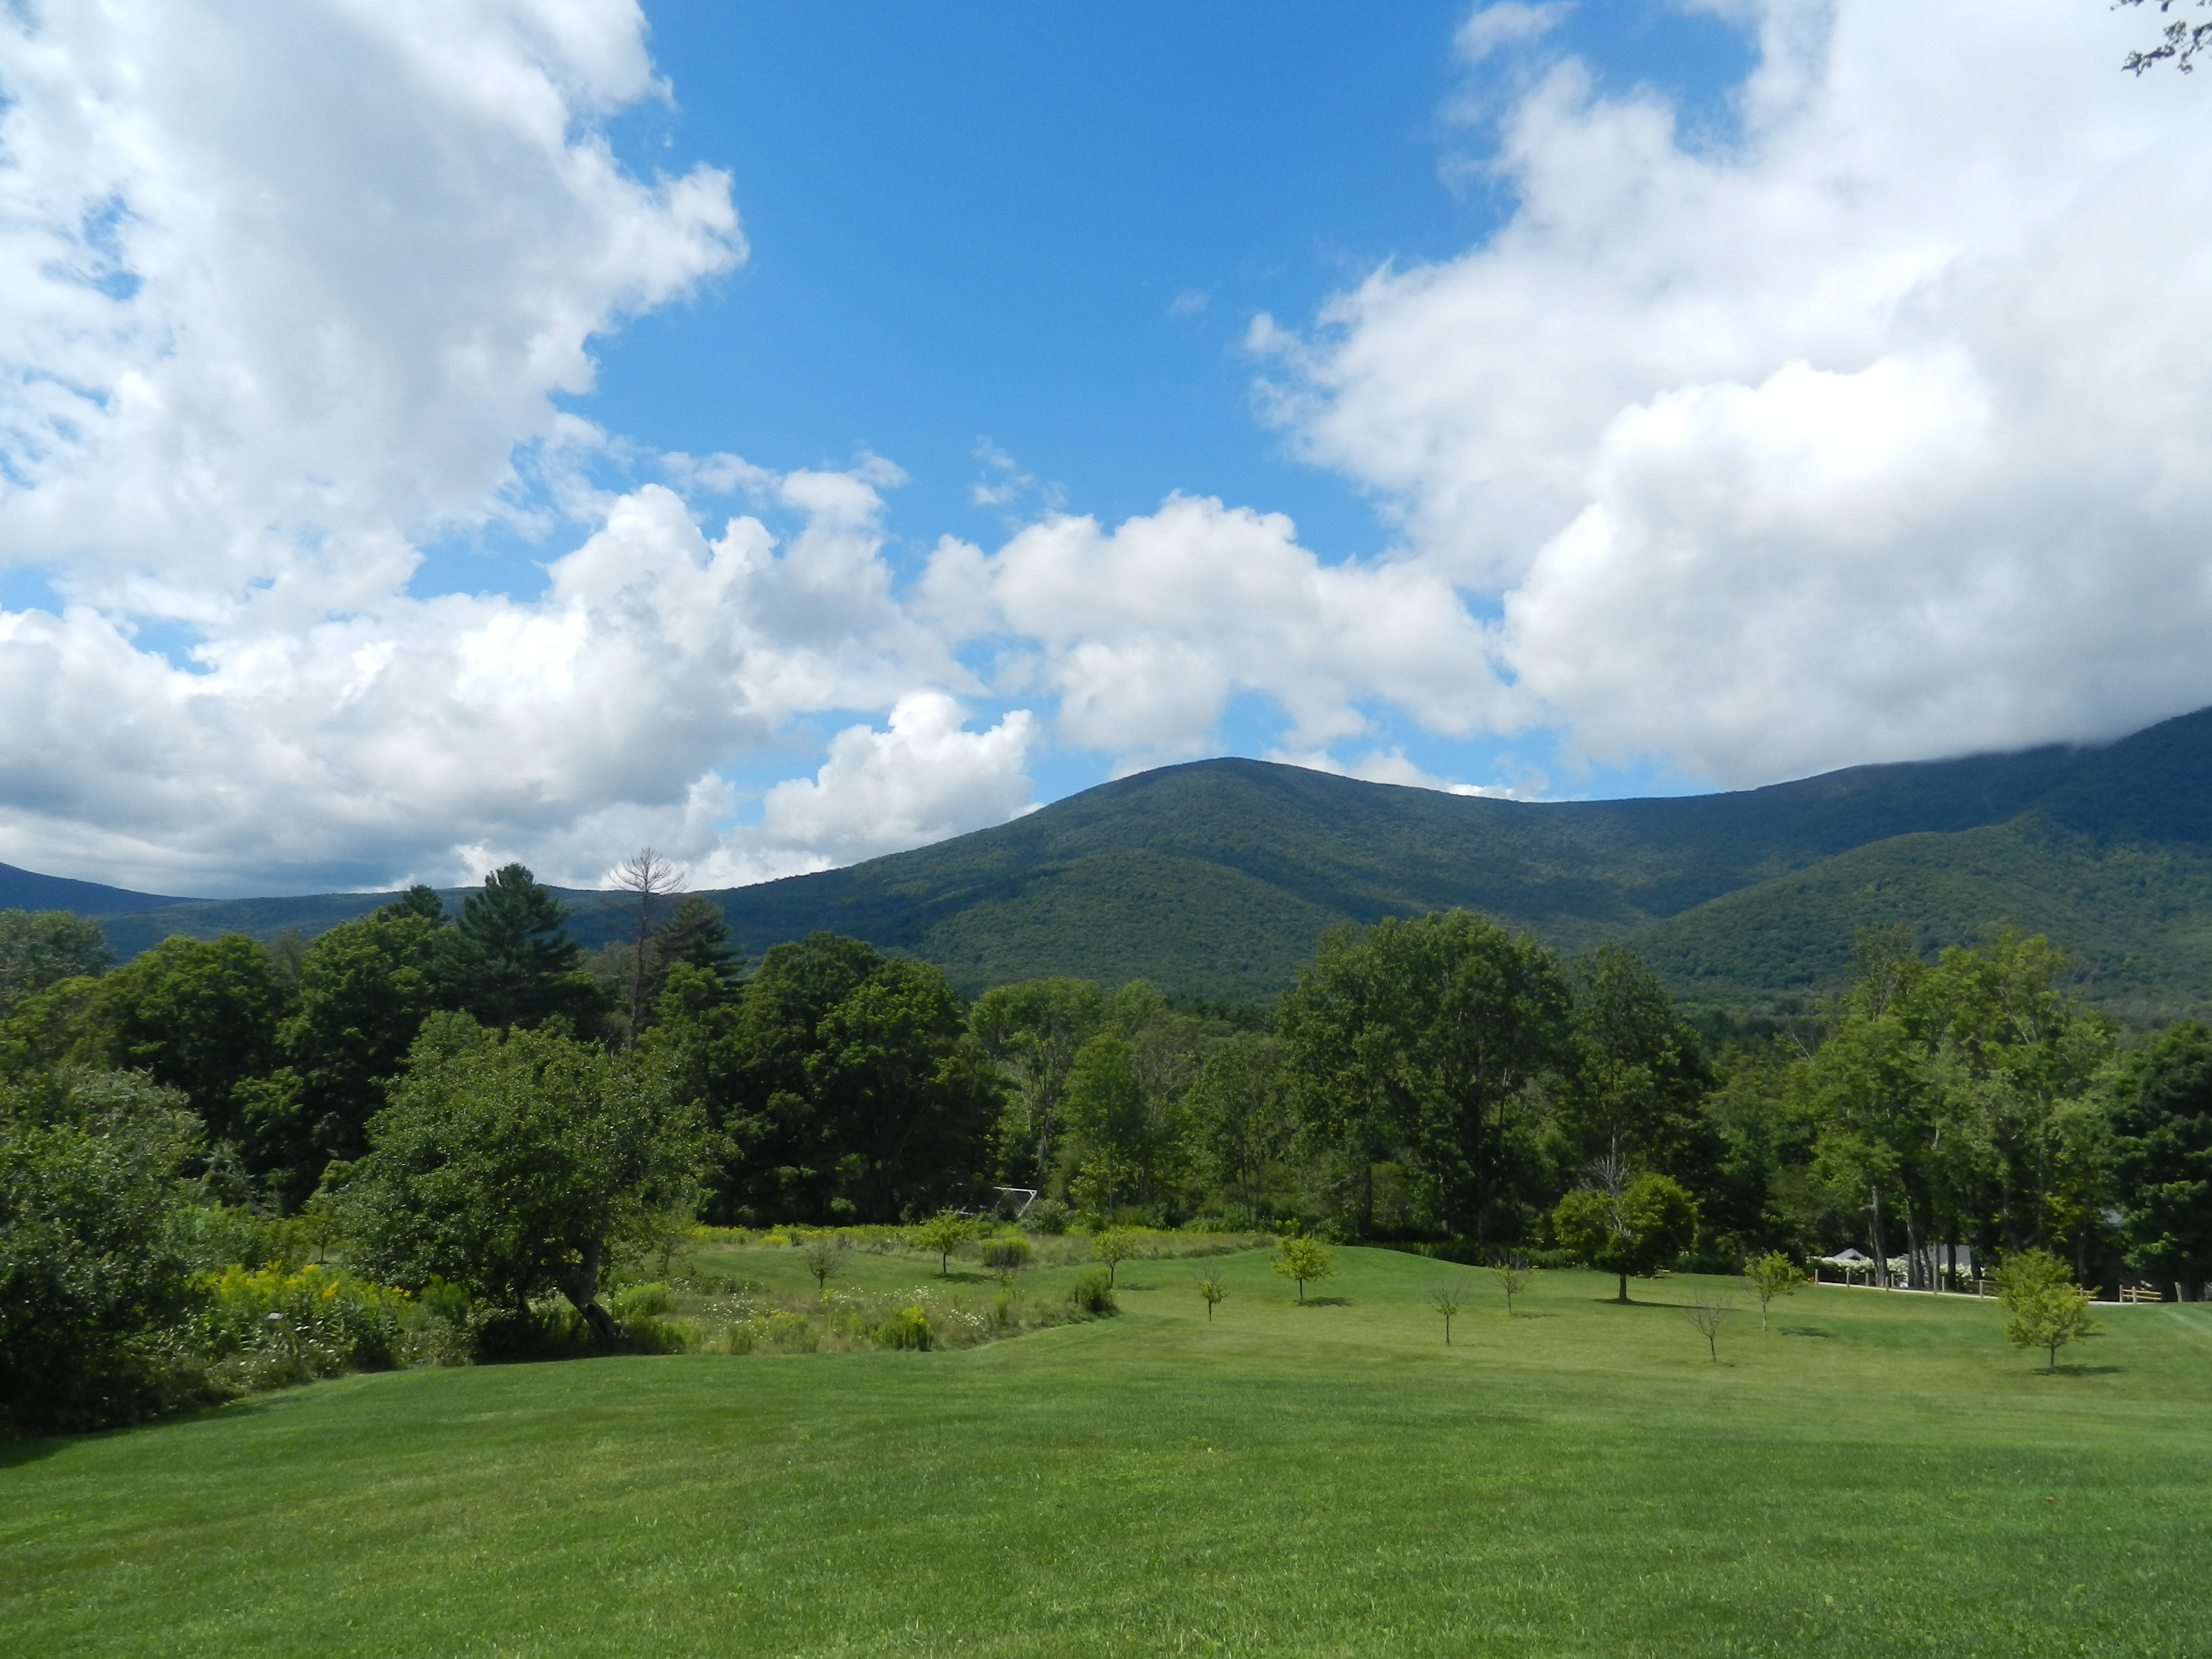 My Vegan Road Trip To The Green Mountains Of Vermont